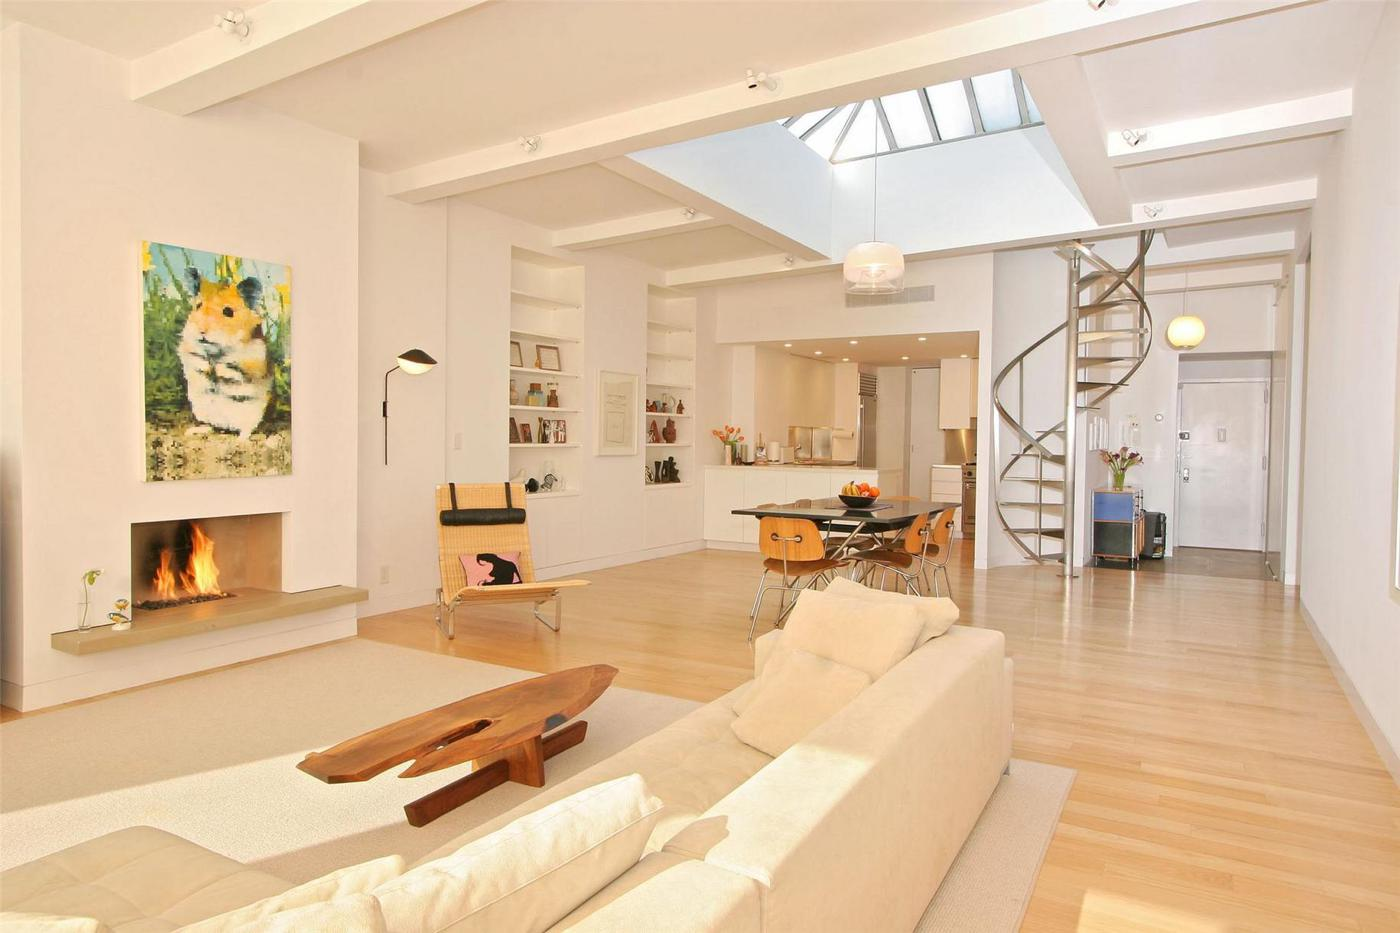 12 Amazing New York Loft Apartments That Will Give You A Serious Case Of Home Envy! (8)